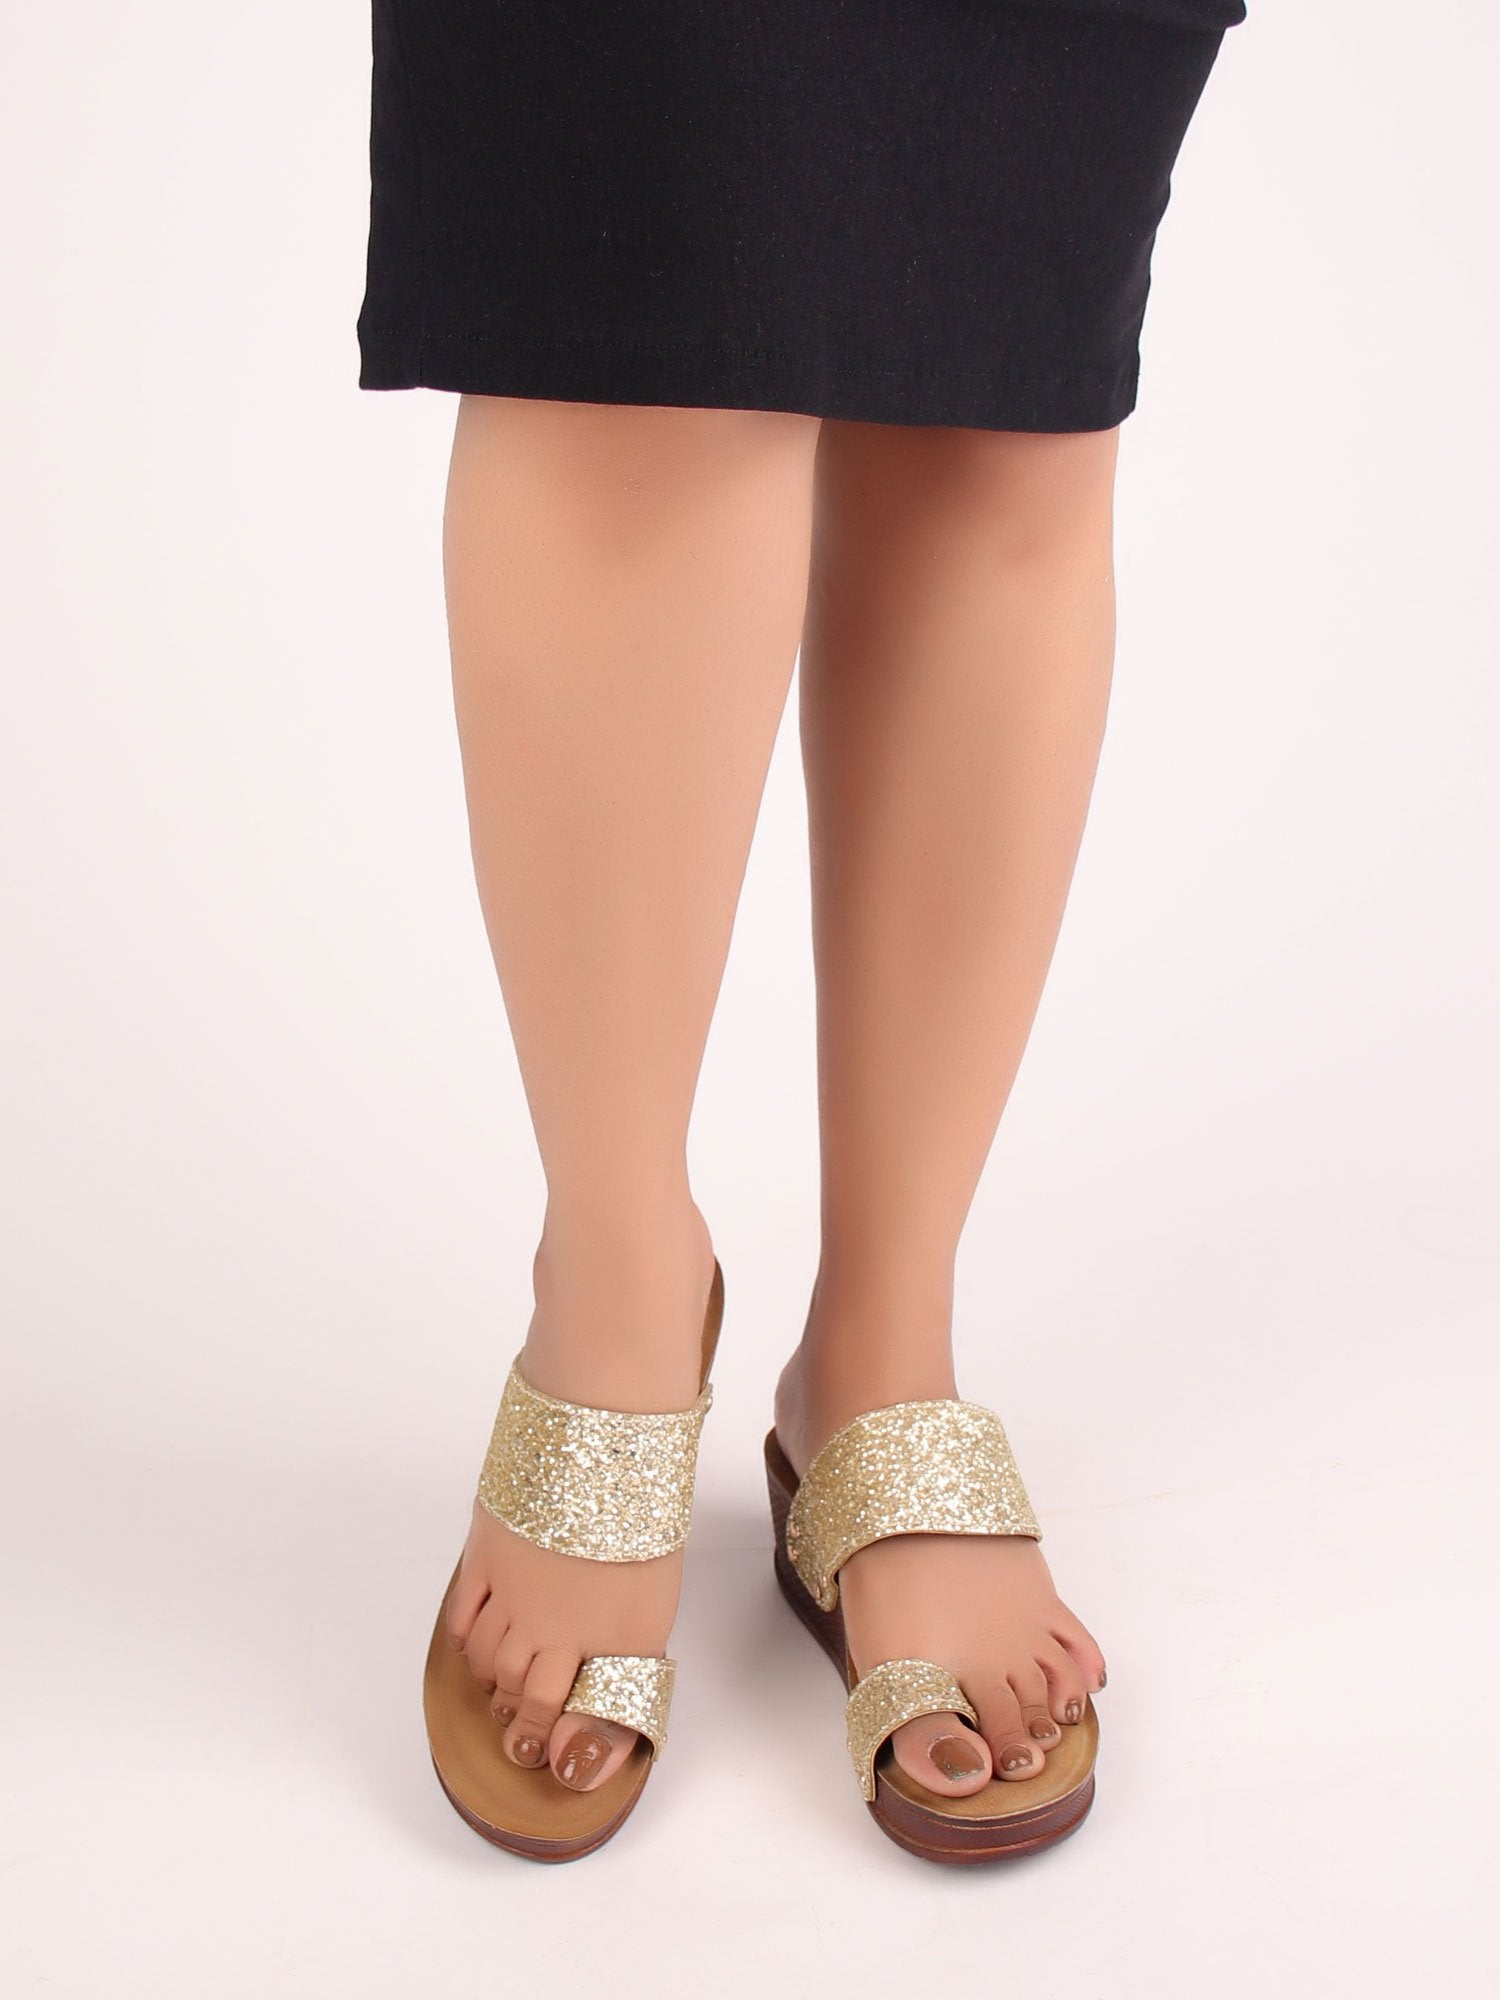 SEQUIN STUDDED WEDGES IN GOLDEN HUE